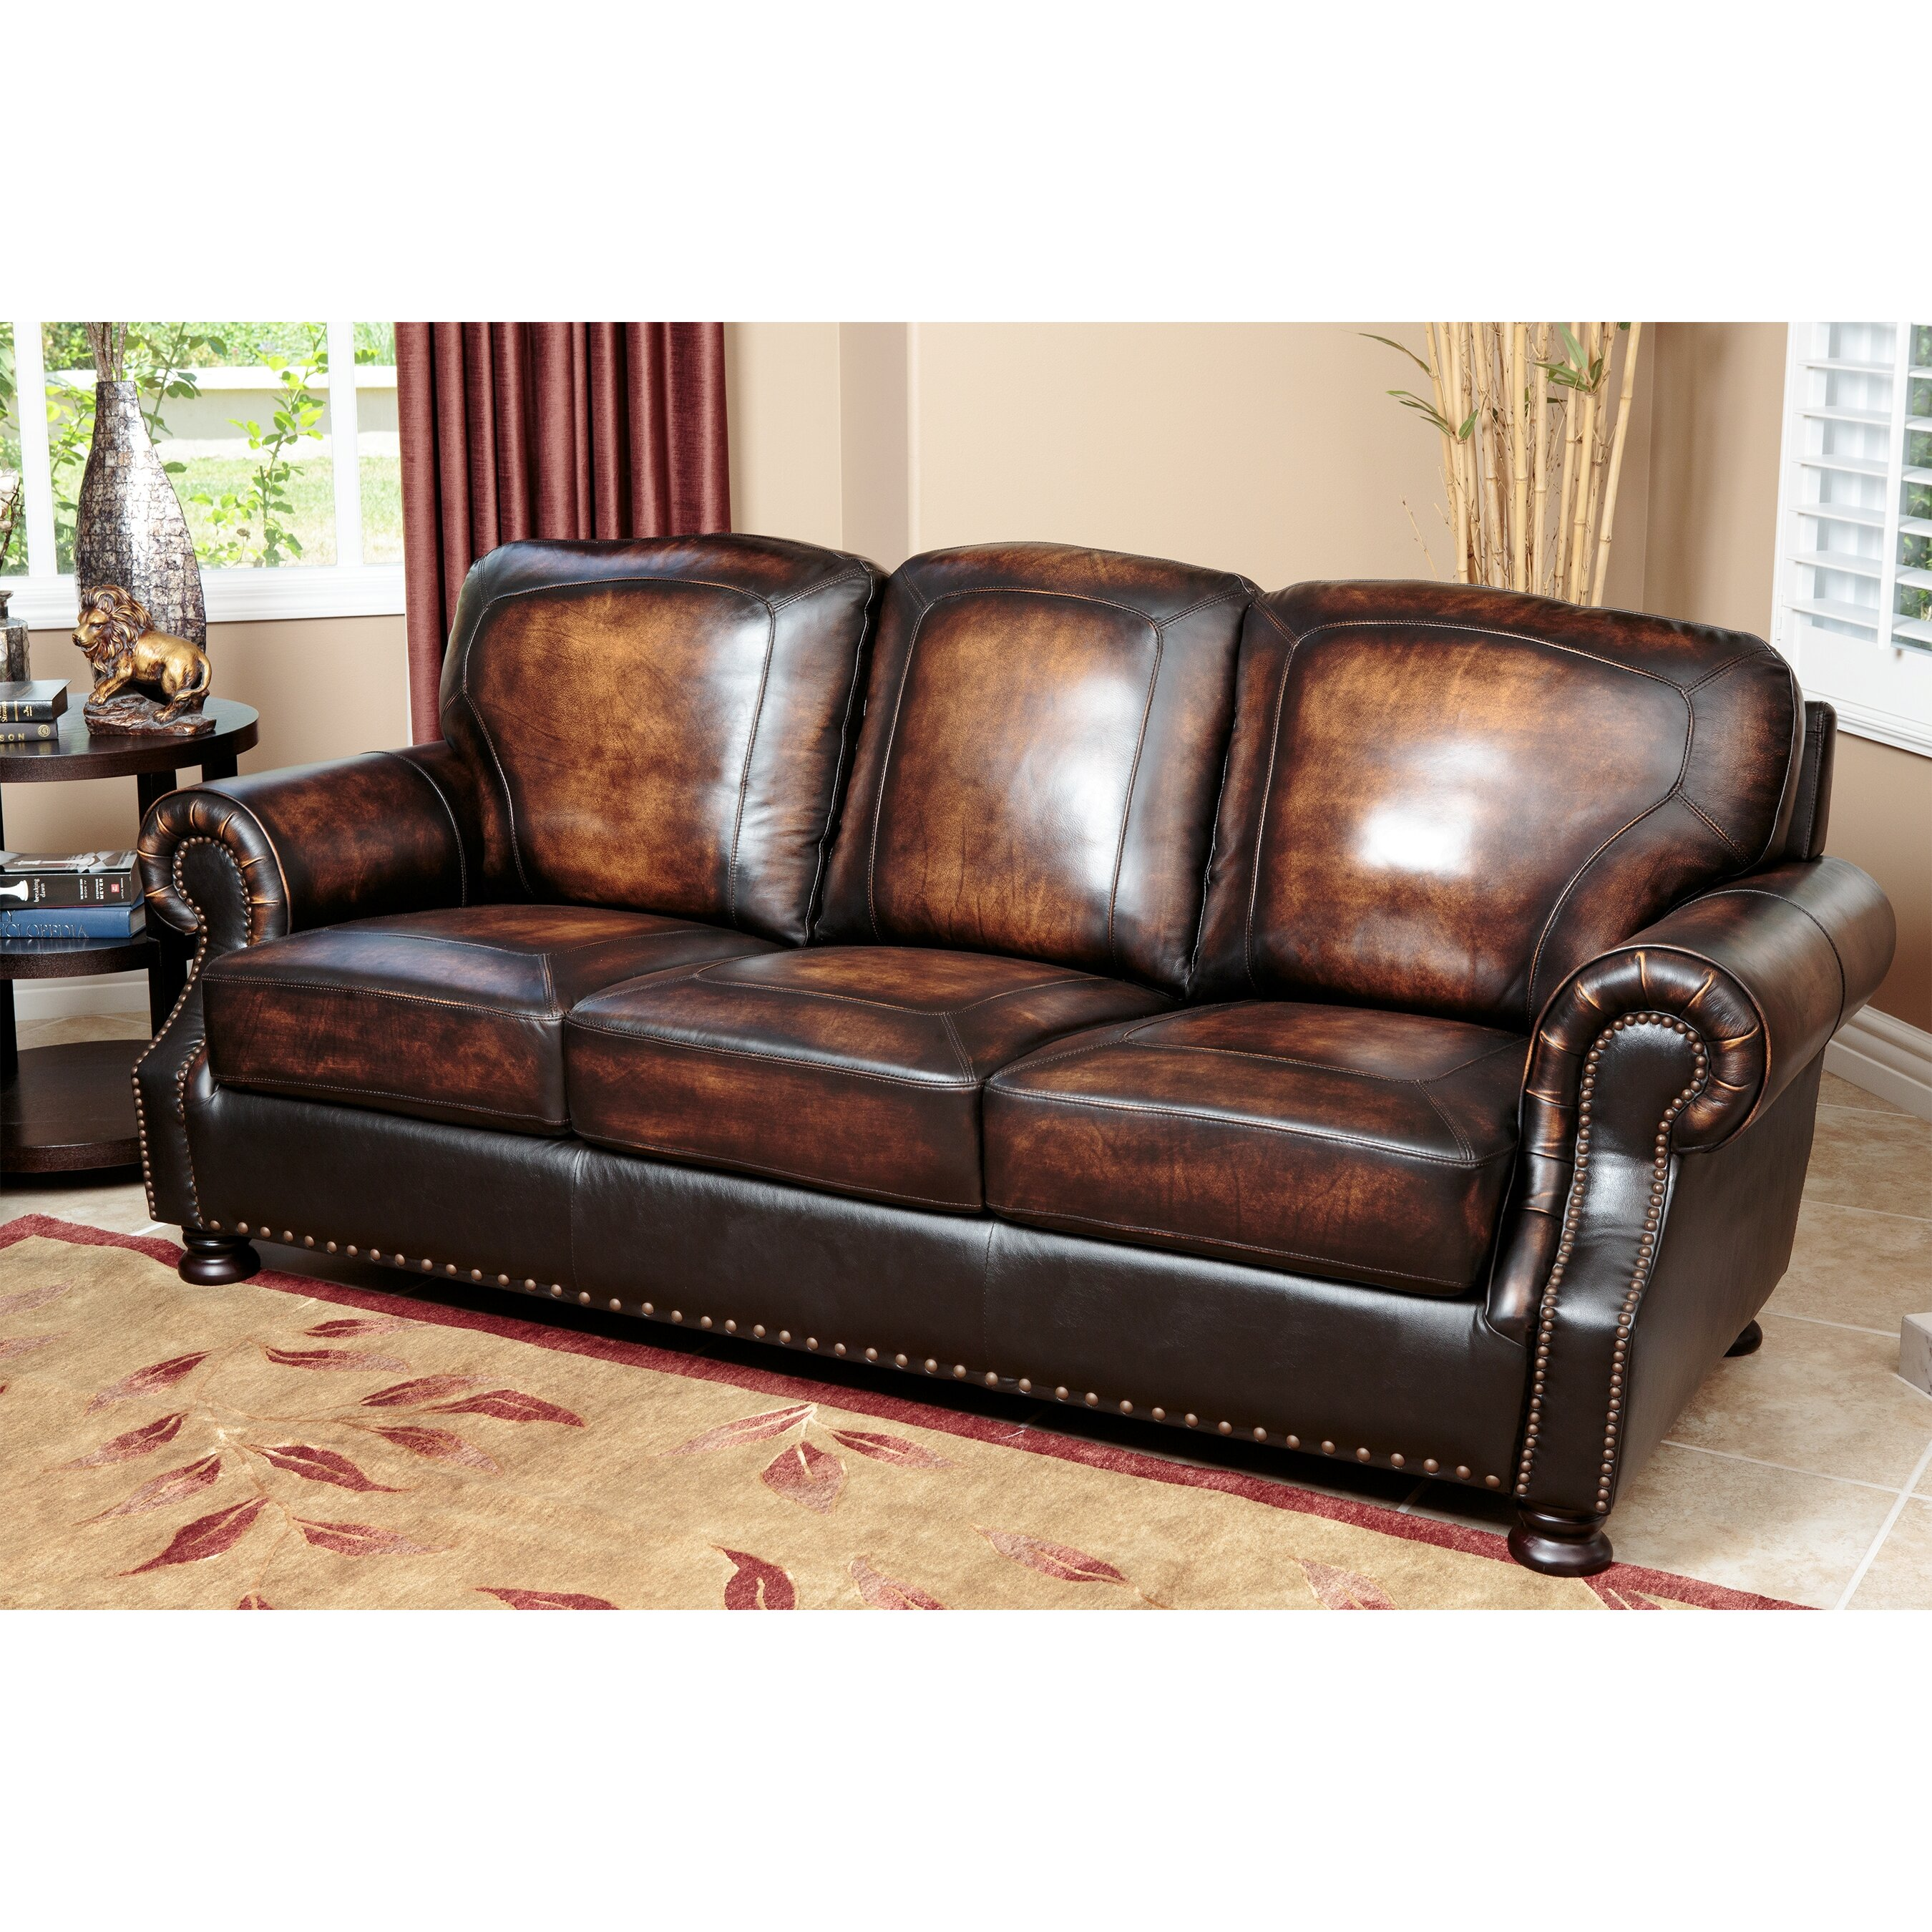 Abbyson Living Sienna Sofa Reviews Wayfair